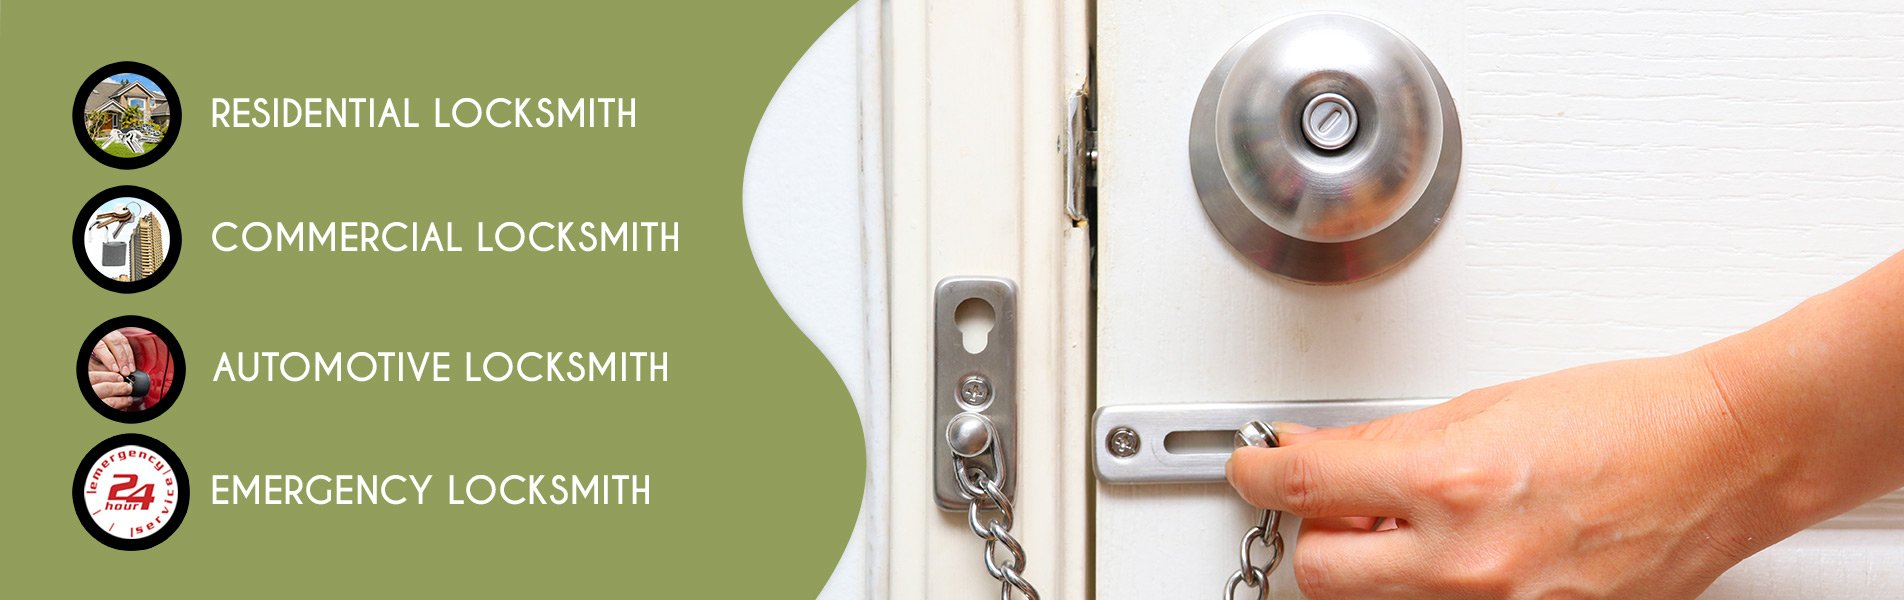 Anchor Locksmith Store Clearwater, FL 727-807-2314